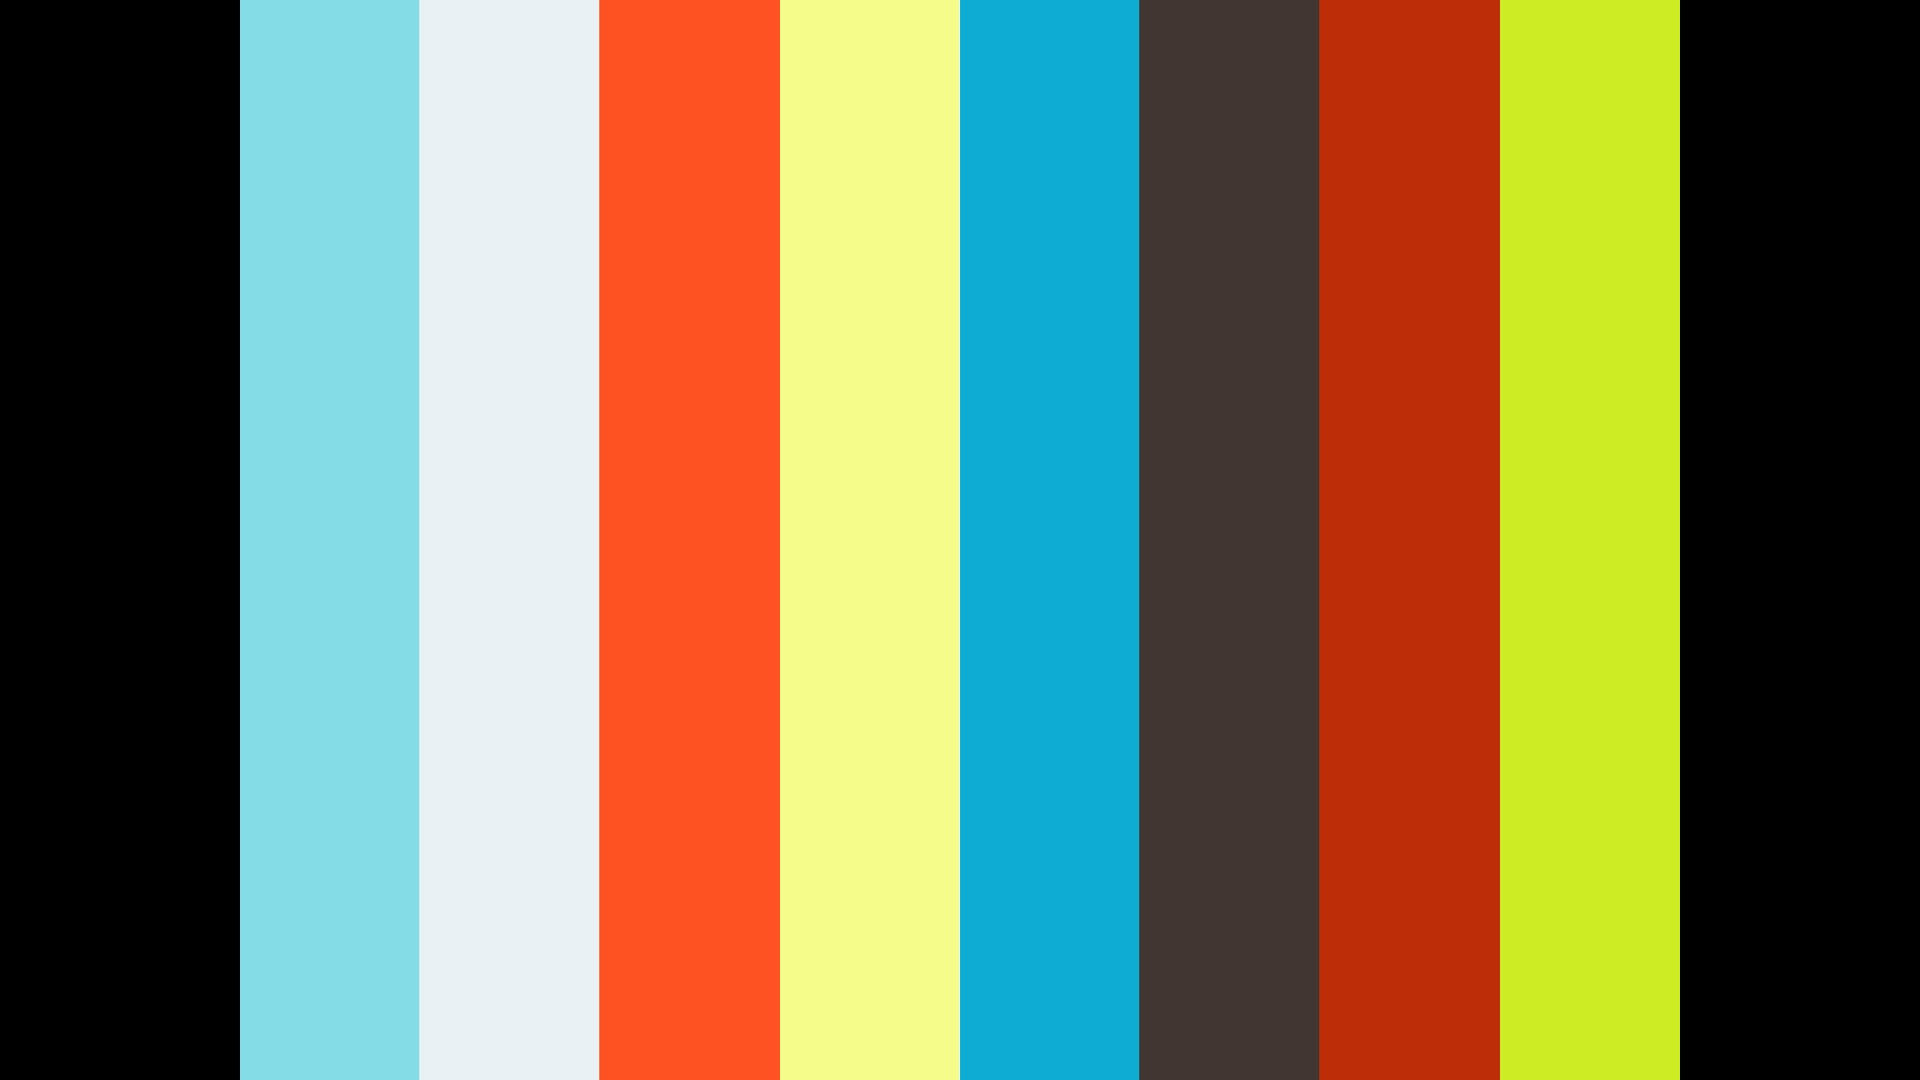 B052 - Lord is My Shepherd